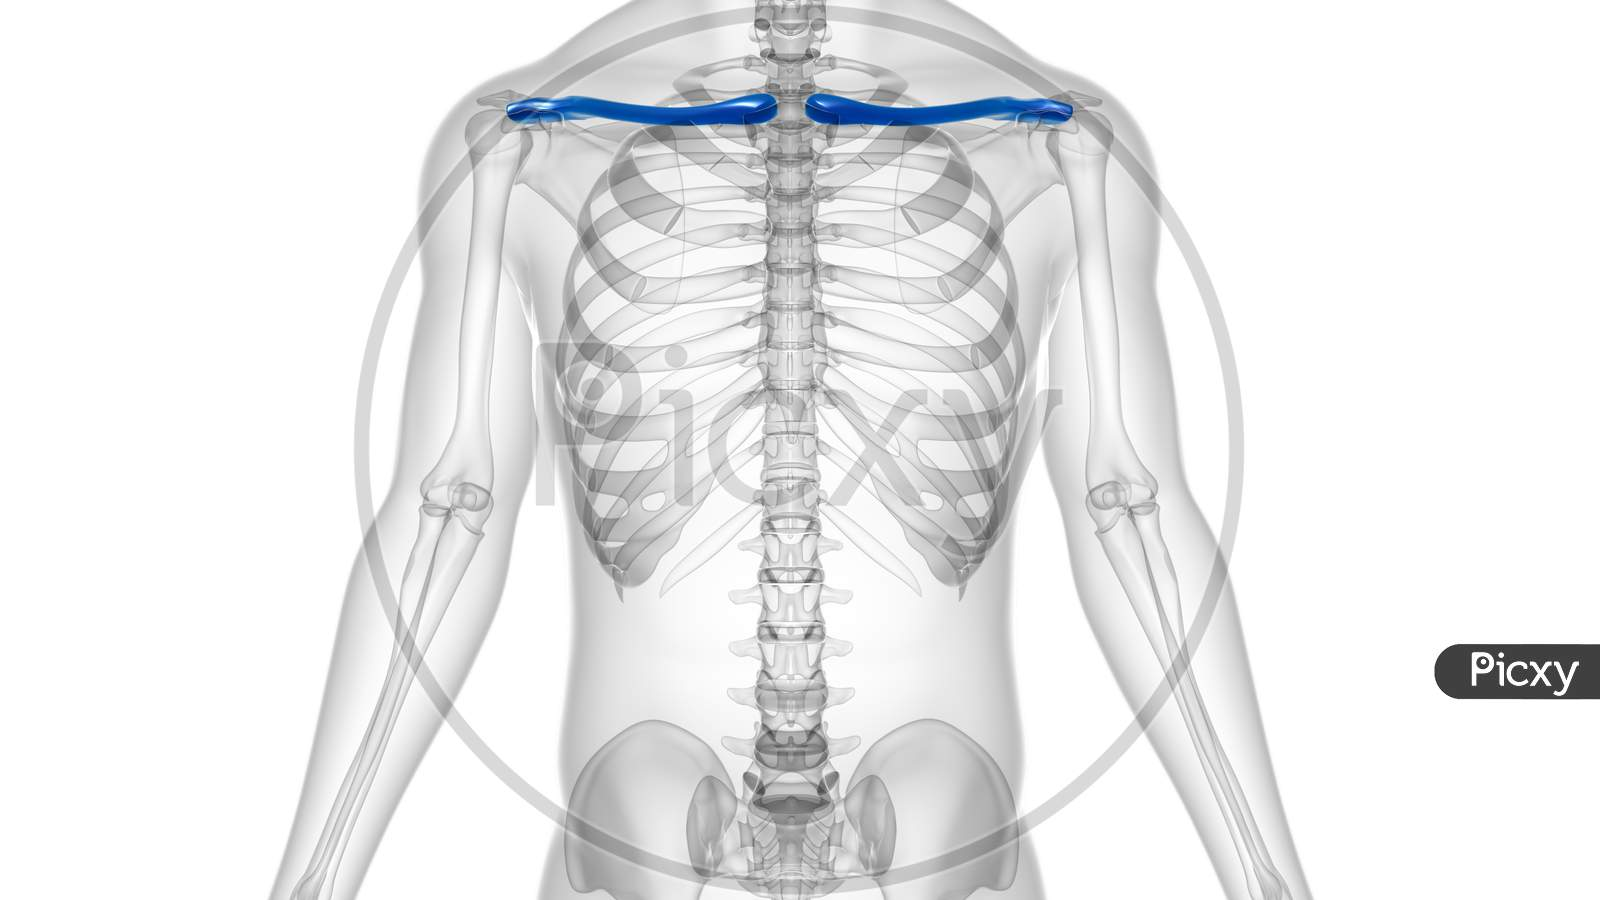 Human Skeleton Anatomy Clavicle Bones 3D Rendering